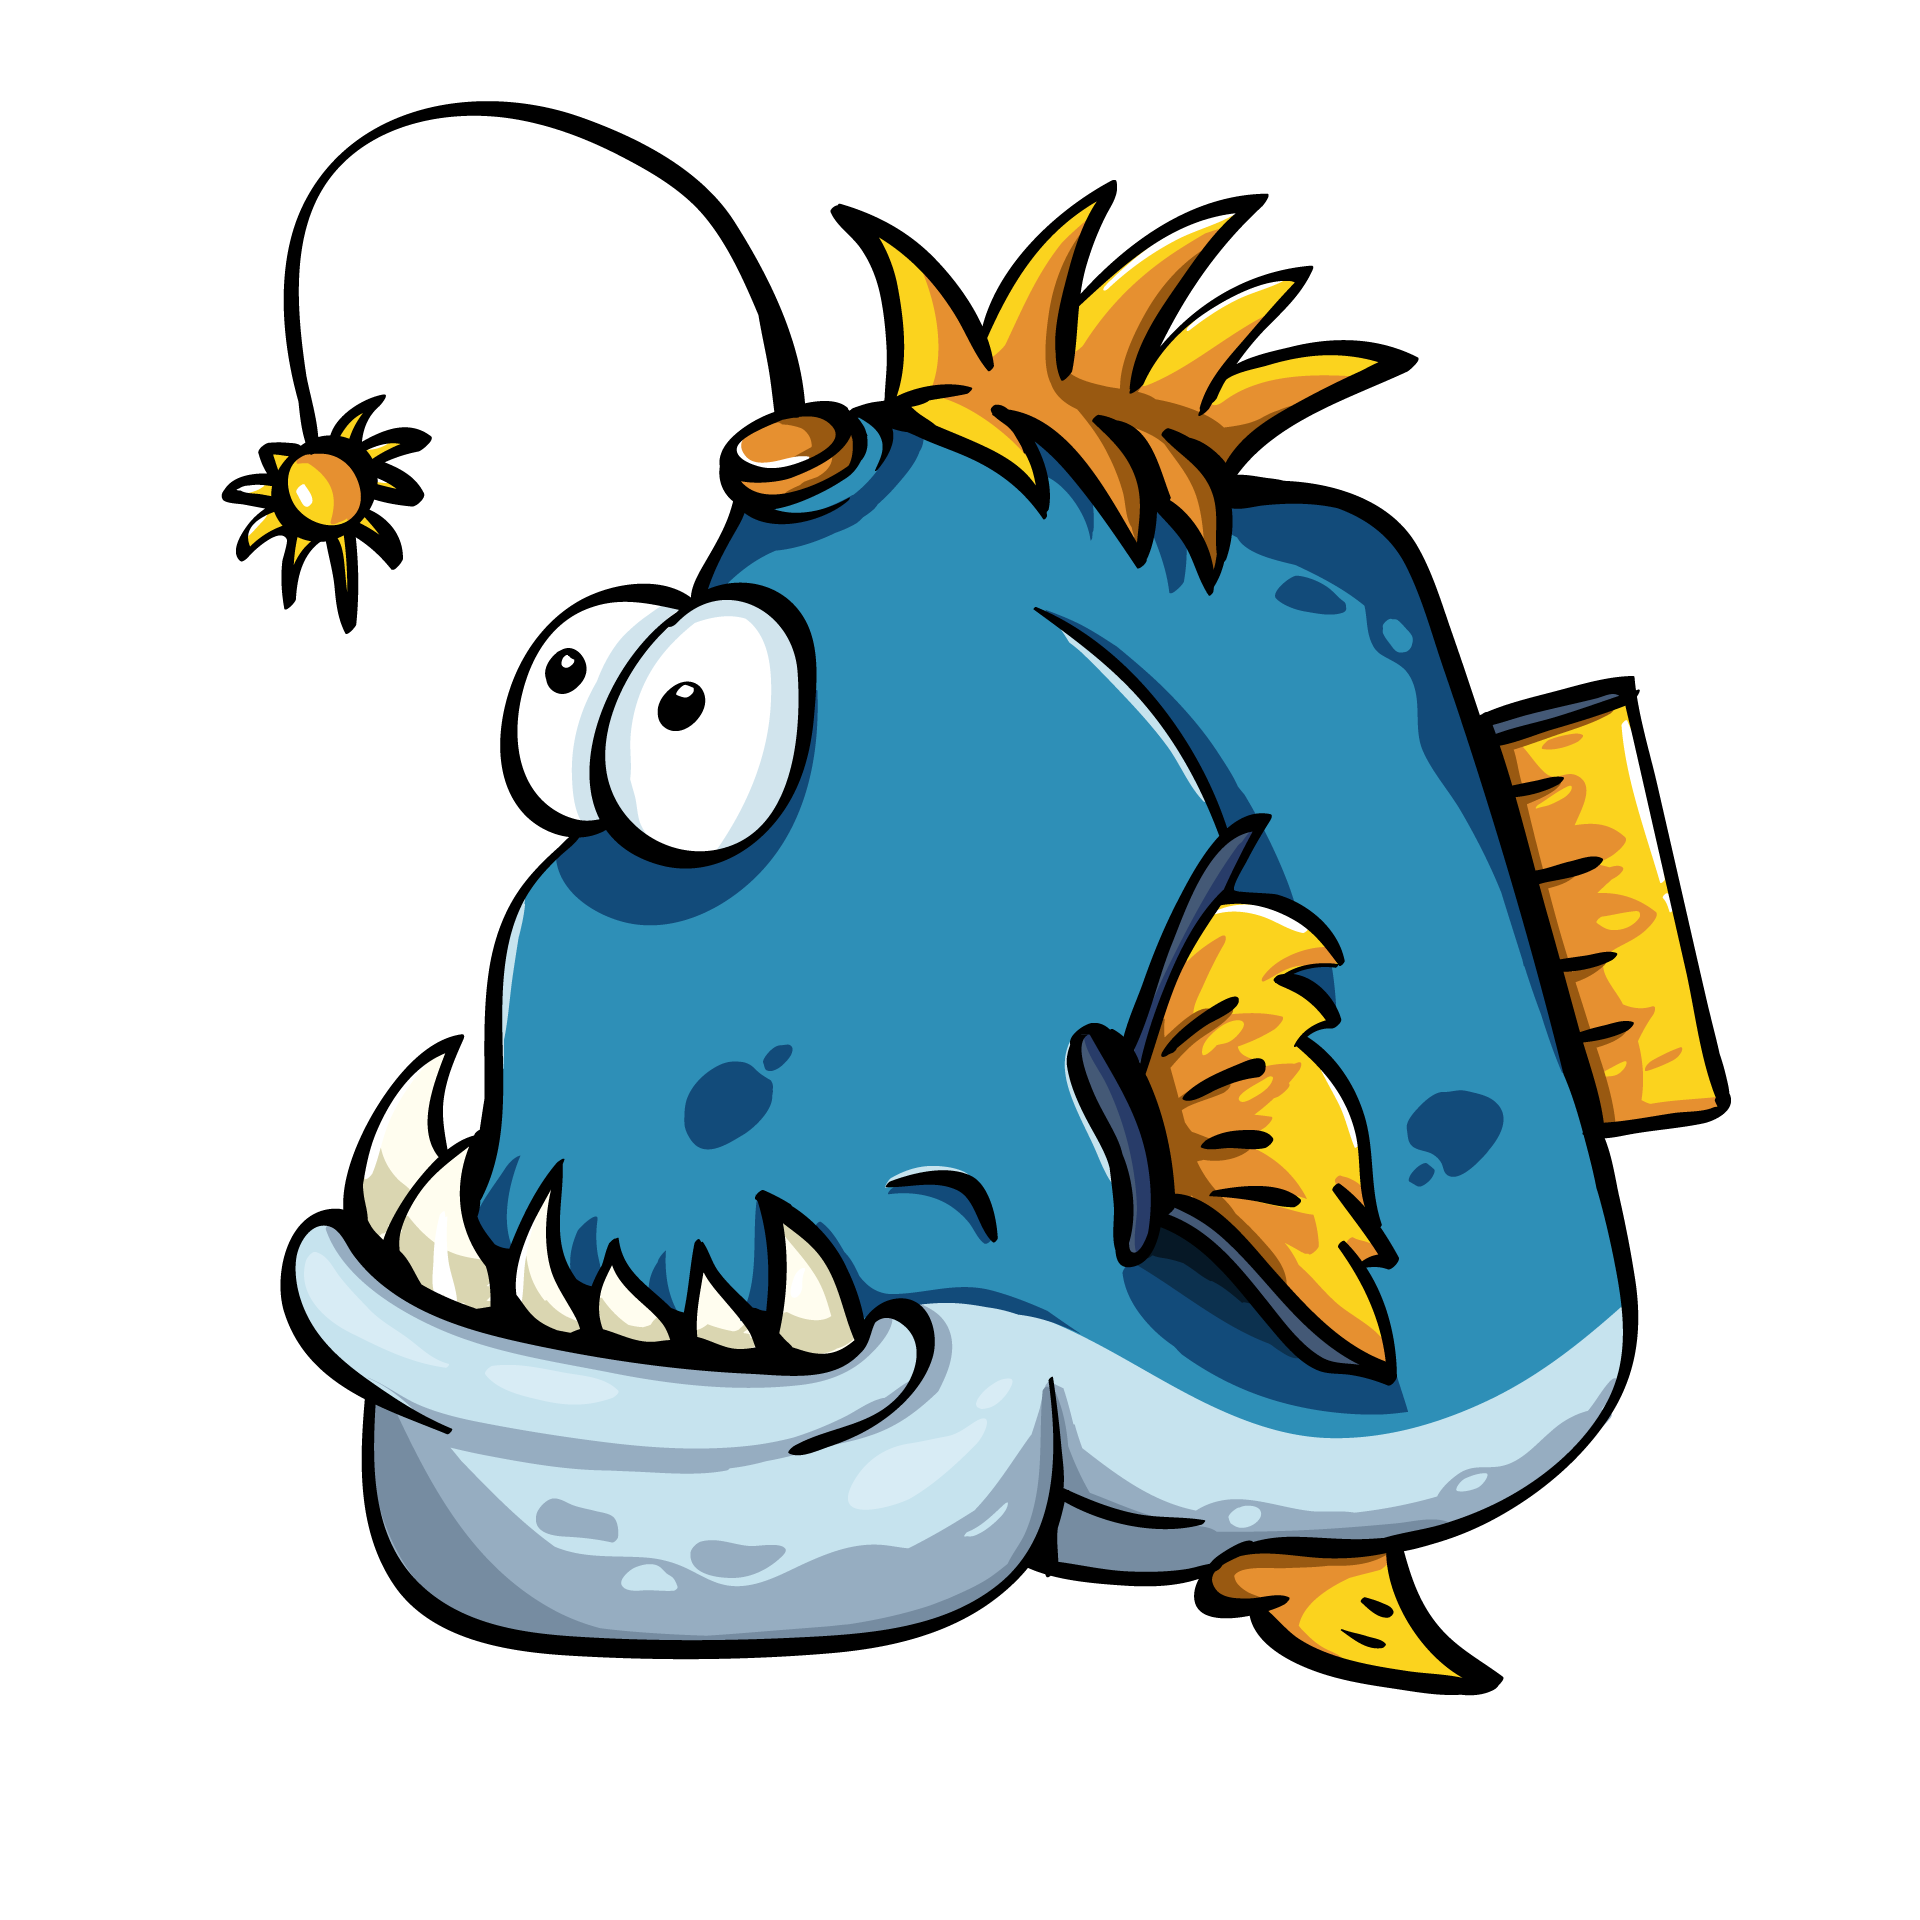 Blue angler fish. Funny animals clipart.